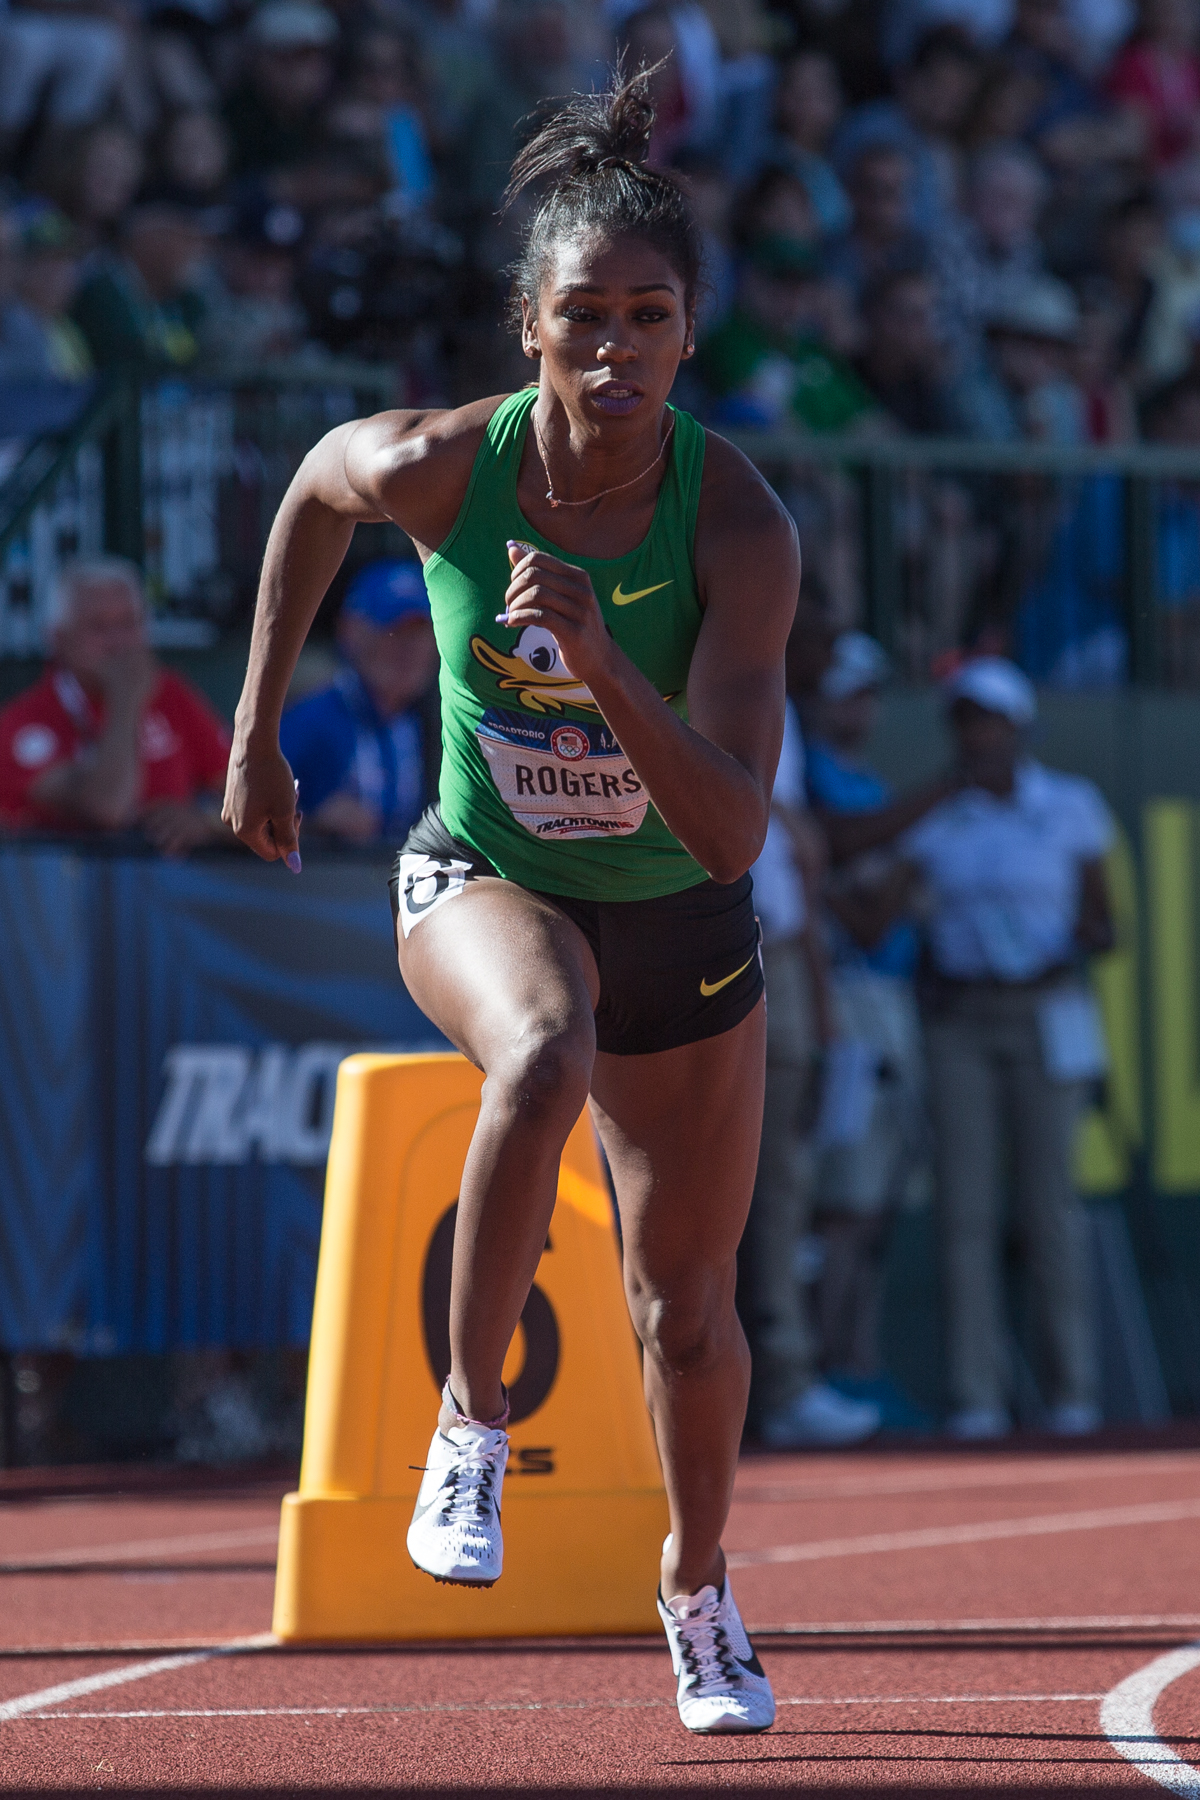 Oregon�s Raevyn Rogers jumps off the block in the women�s 800m qualifying round. She placed 10th overall, advancing her to the next round. Photo by Dillon Vibes